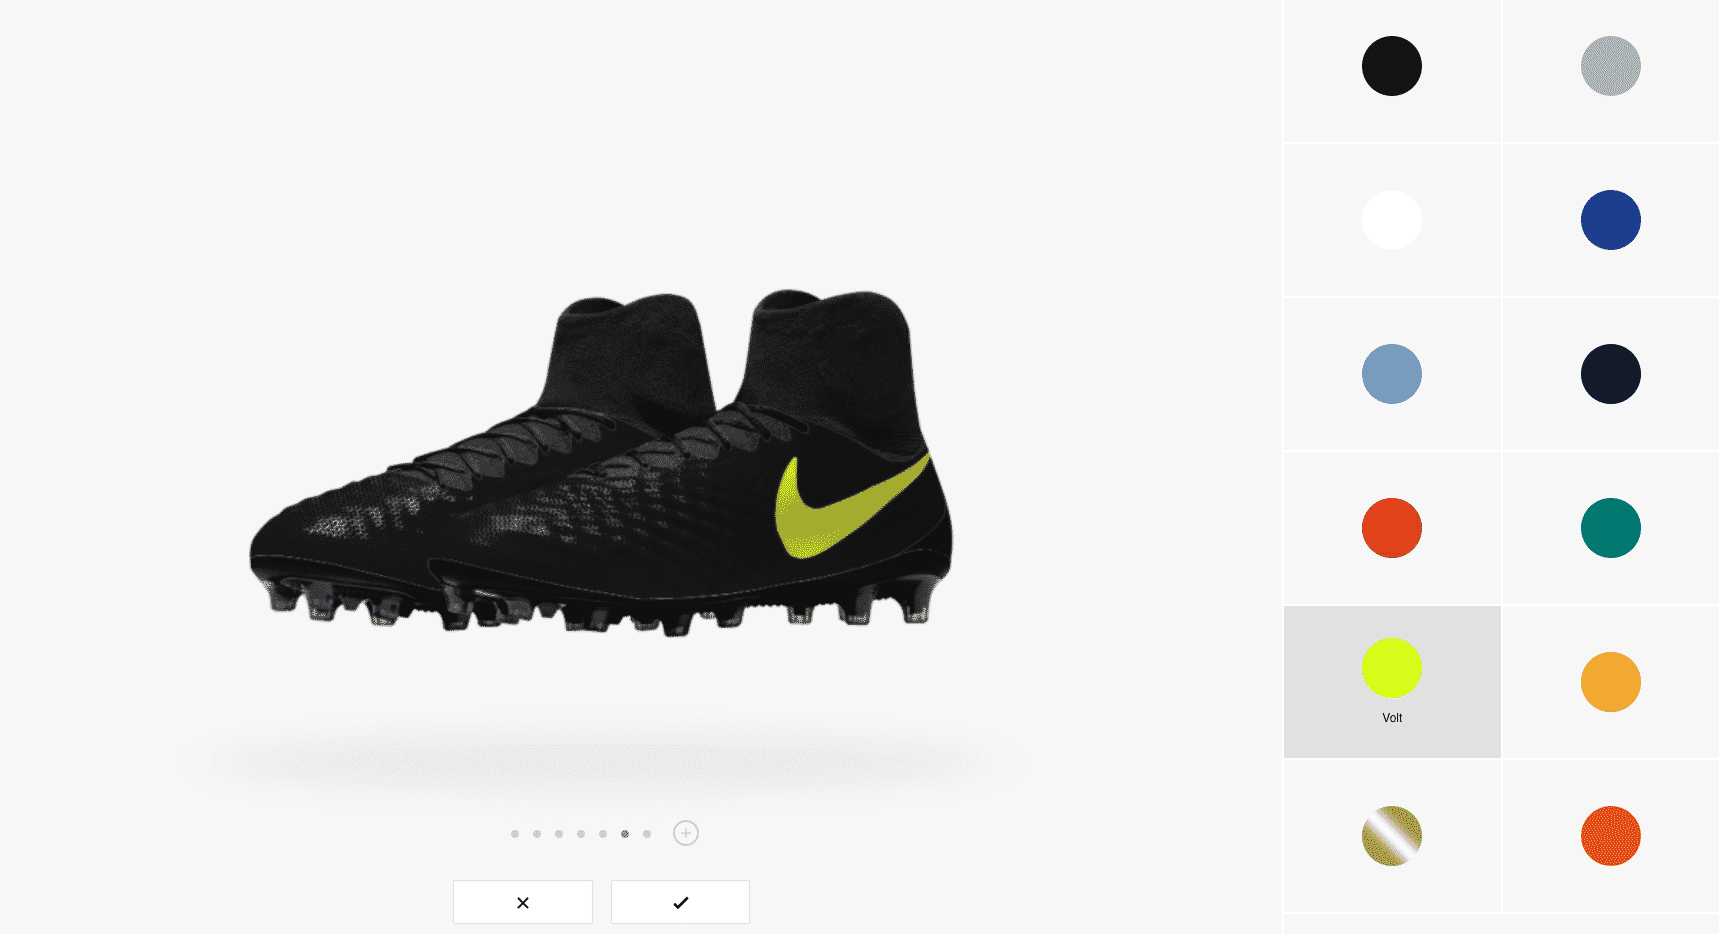 chaussure-football-nike-tech-craft-id-img4